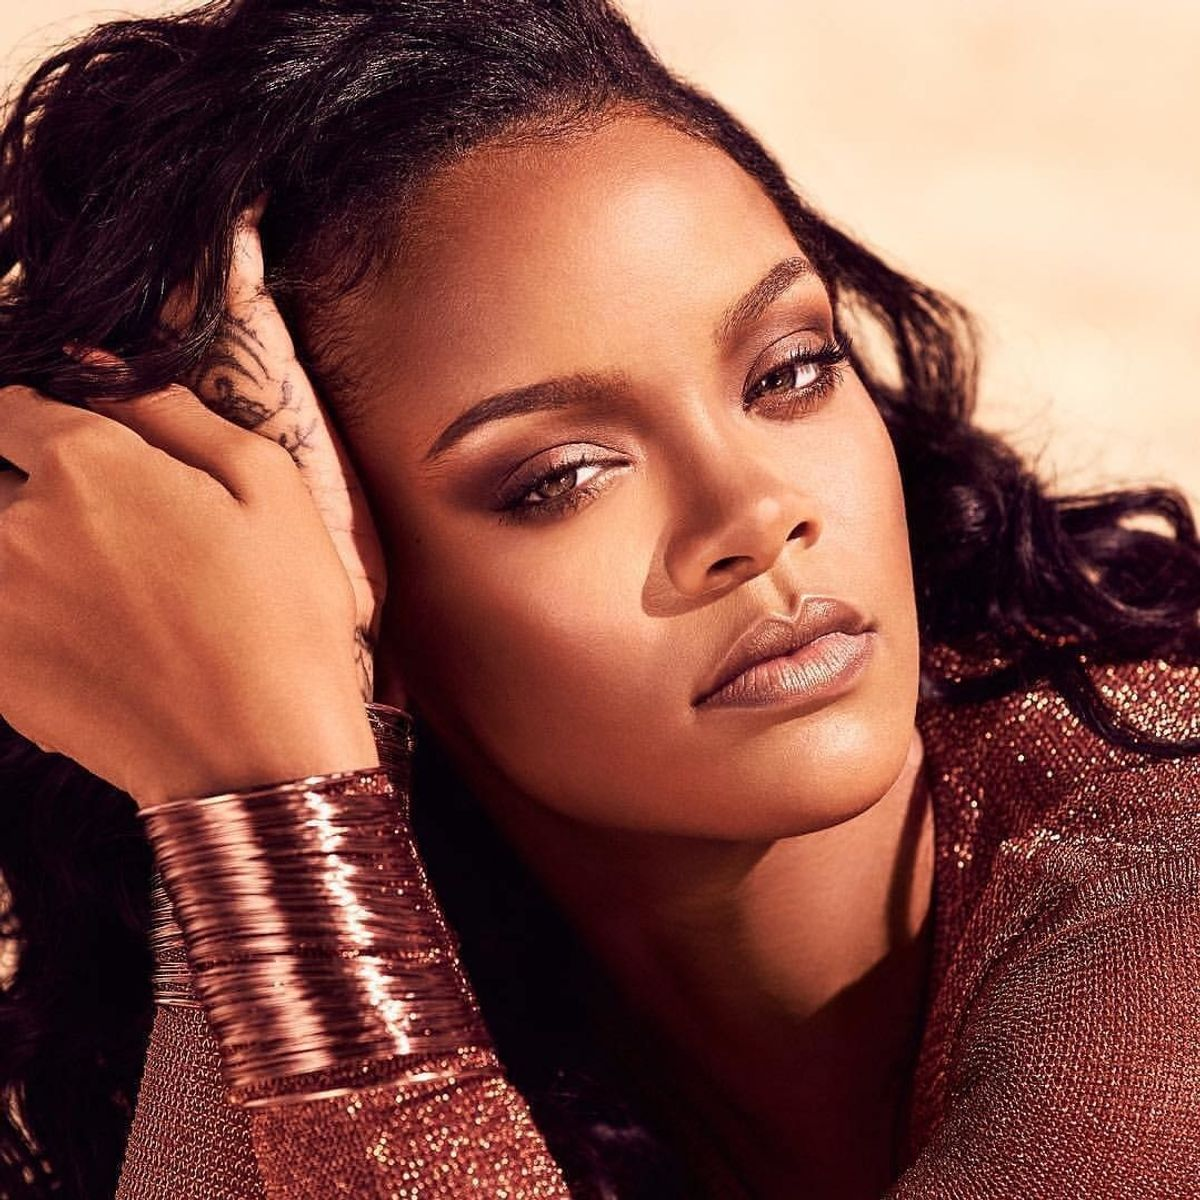 A Mystery Fenty Beauty Product Is Coming